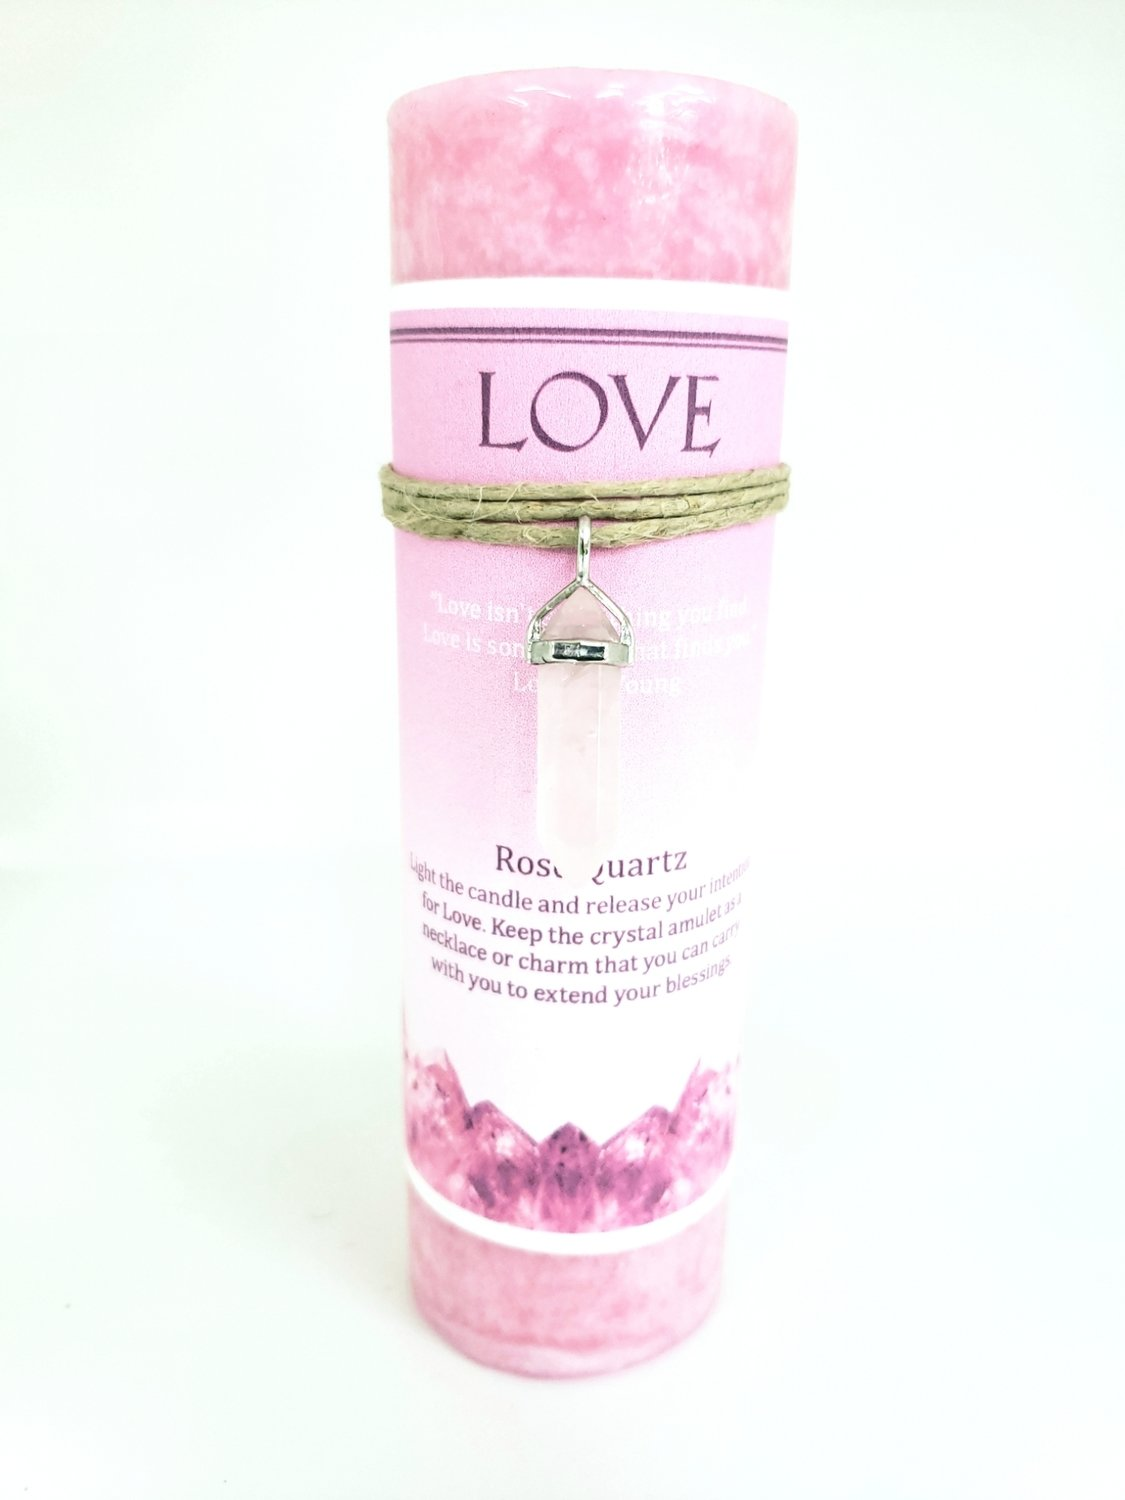 Love Candle with Rose Quartz Pendant